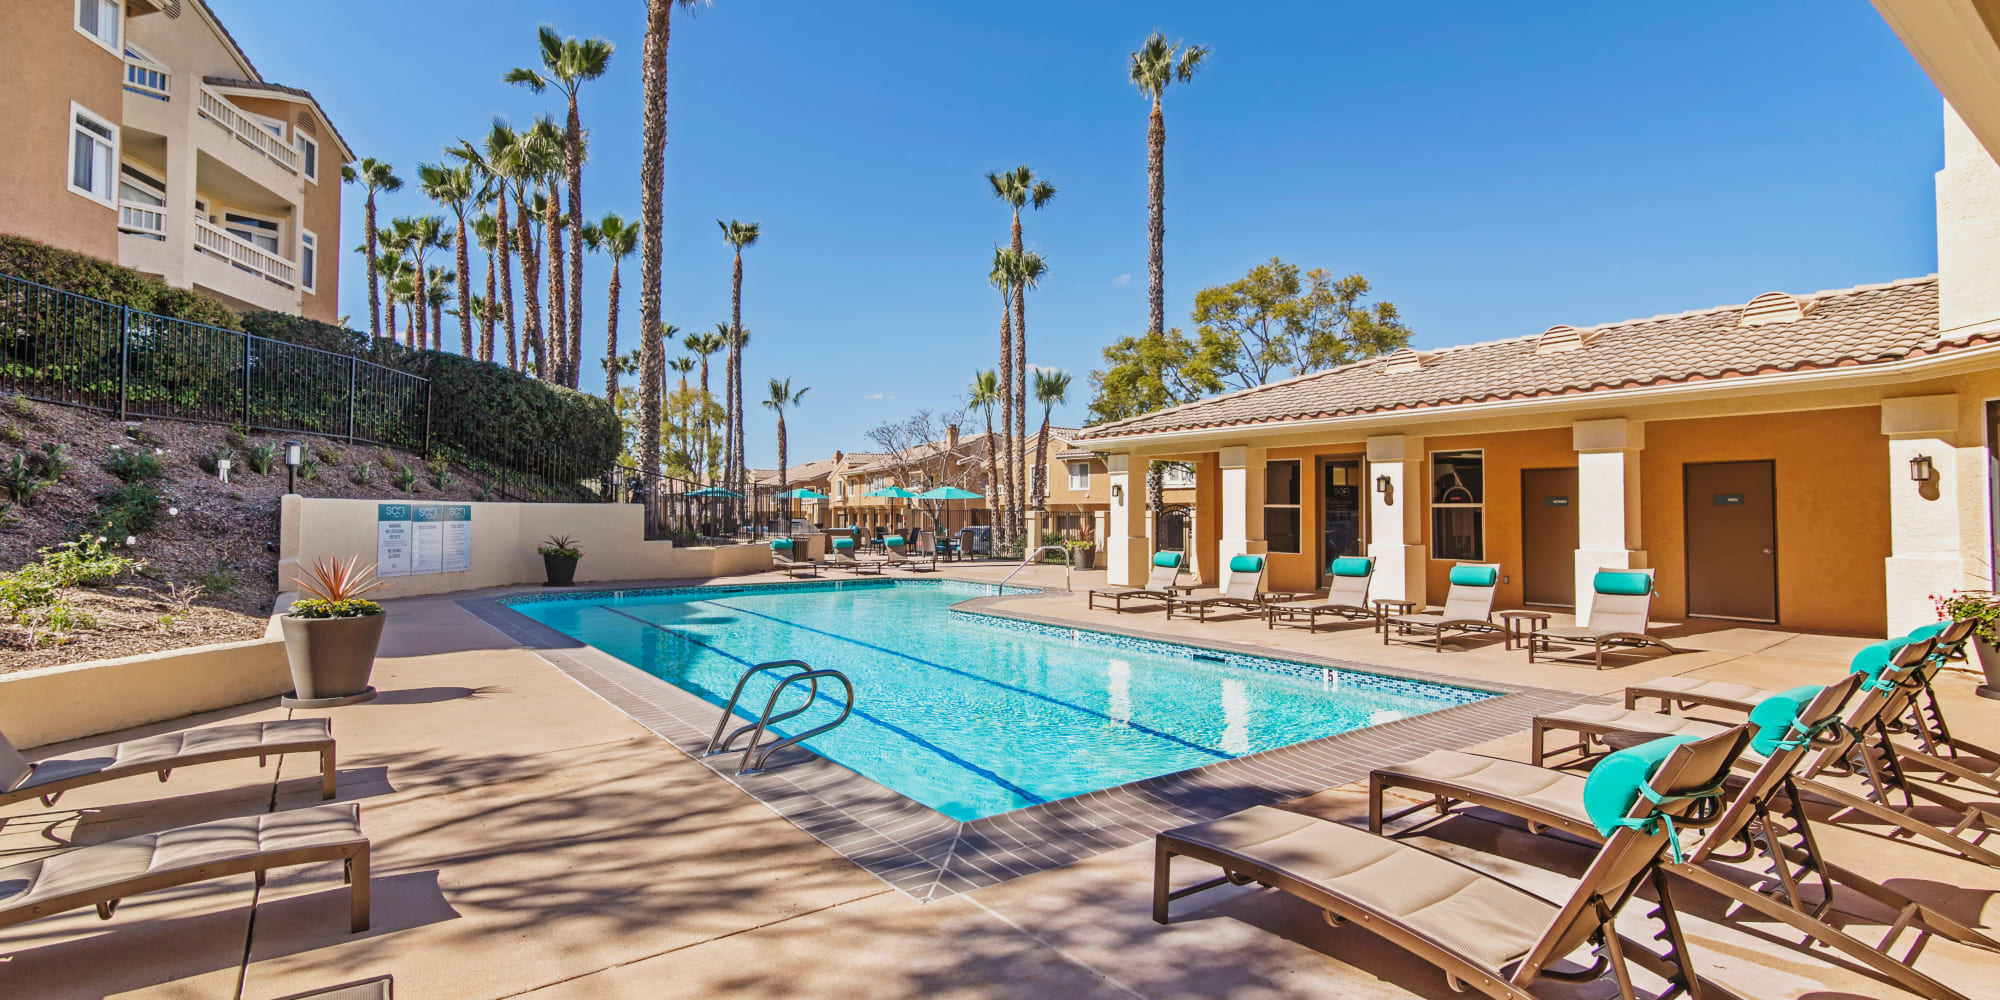 Apartments in San Diego, California, at Sofi Canyon Hills